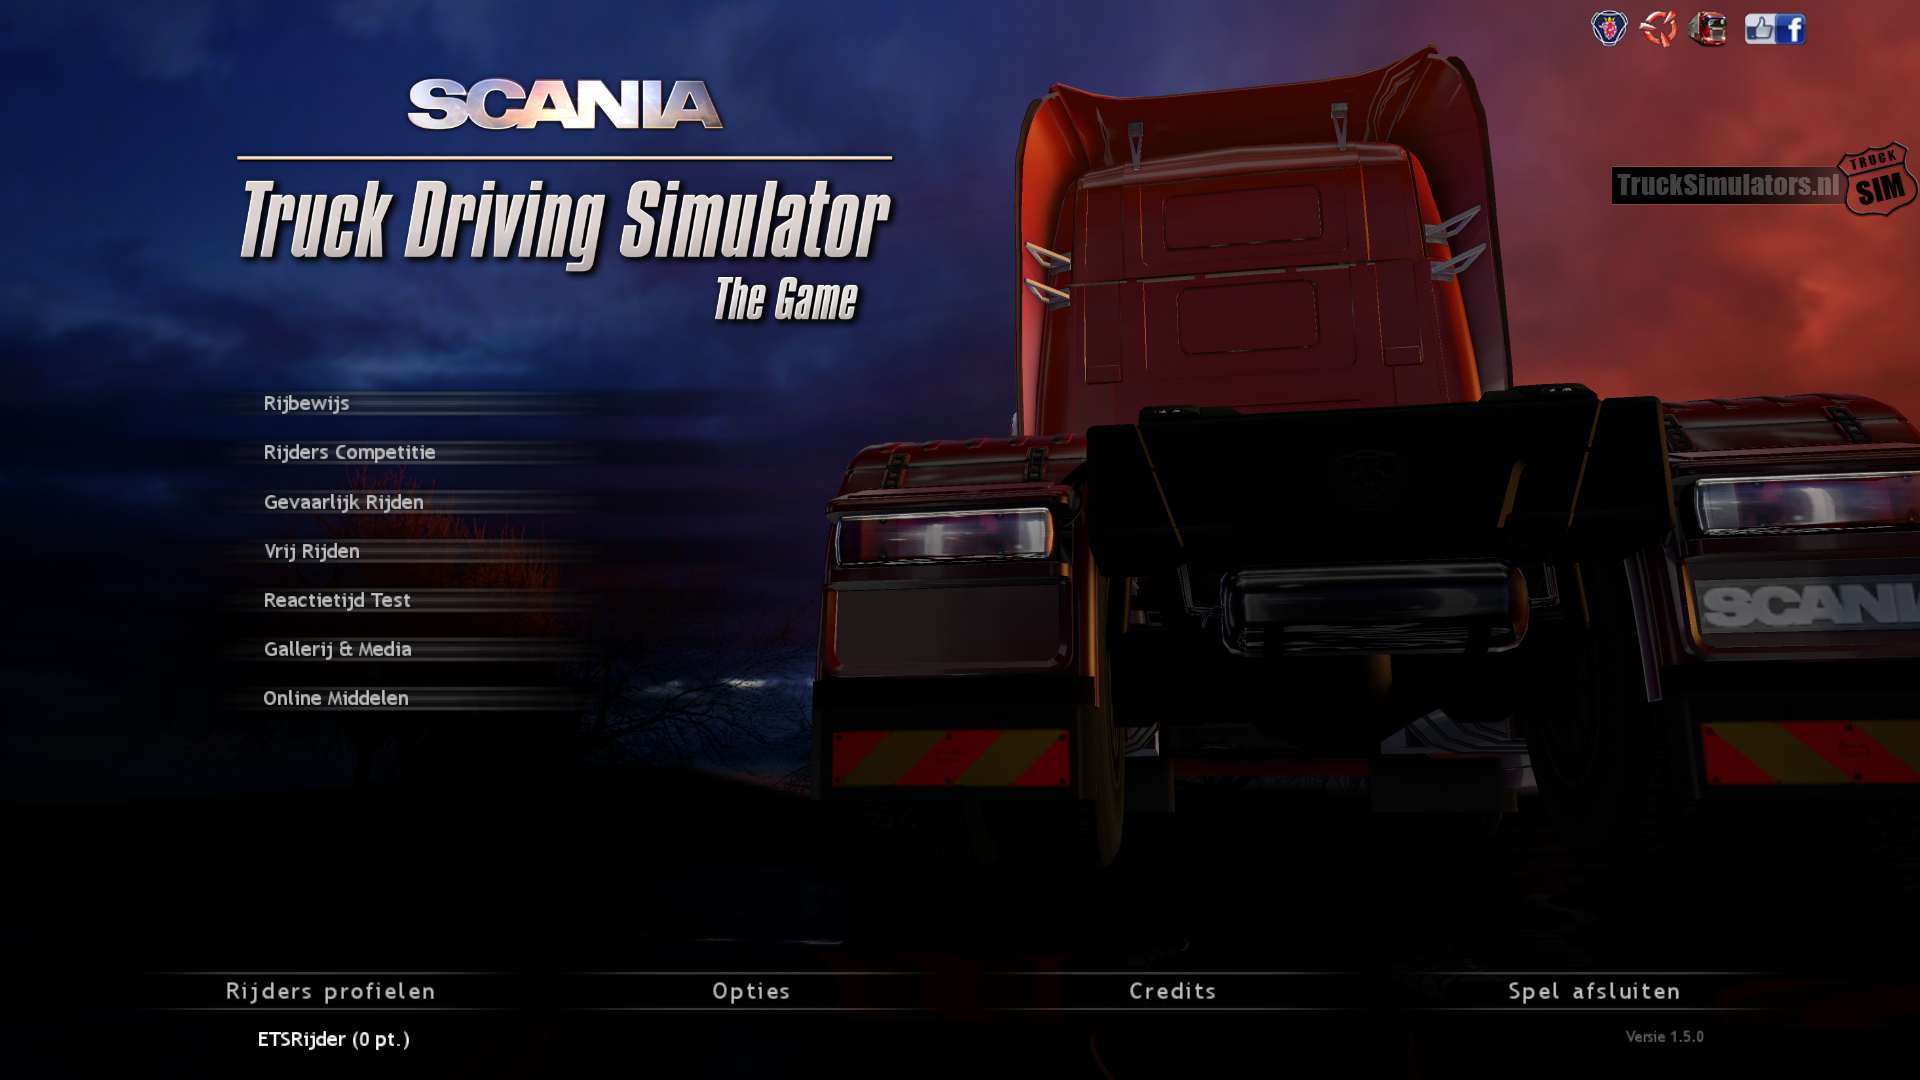 Scania truck driver simulator game